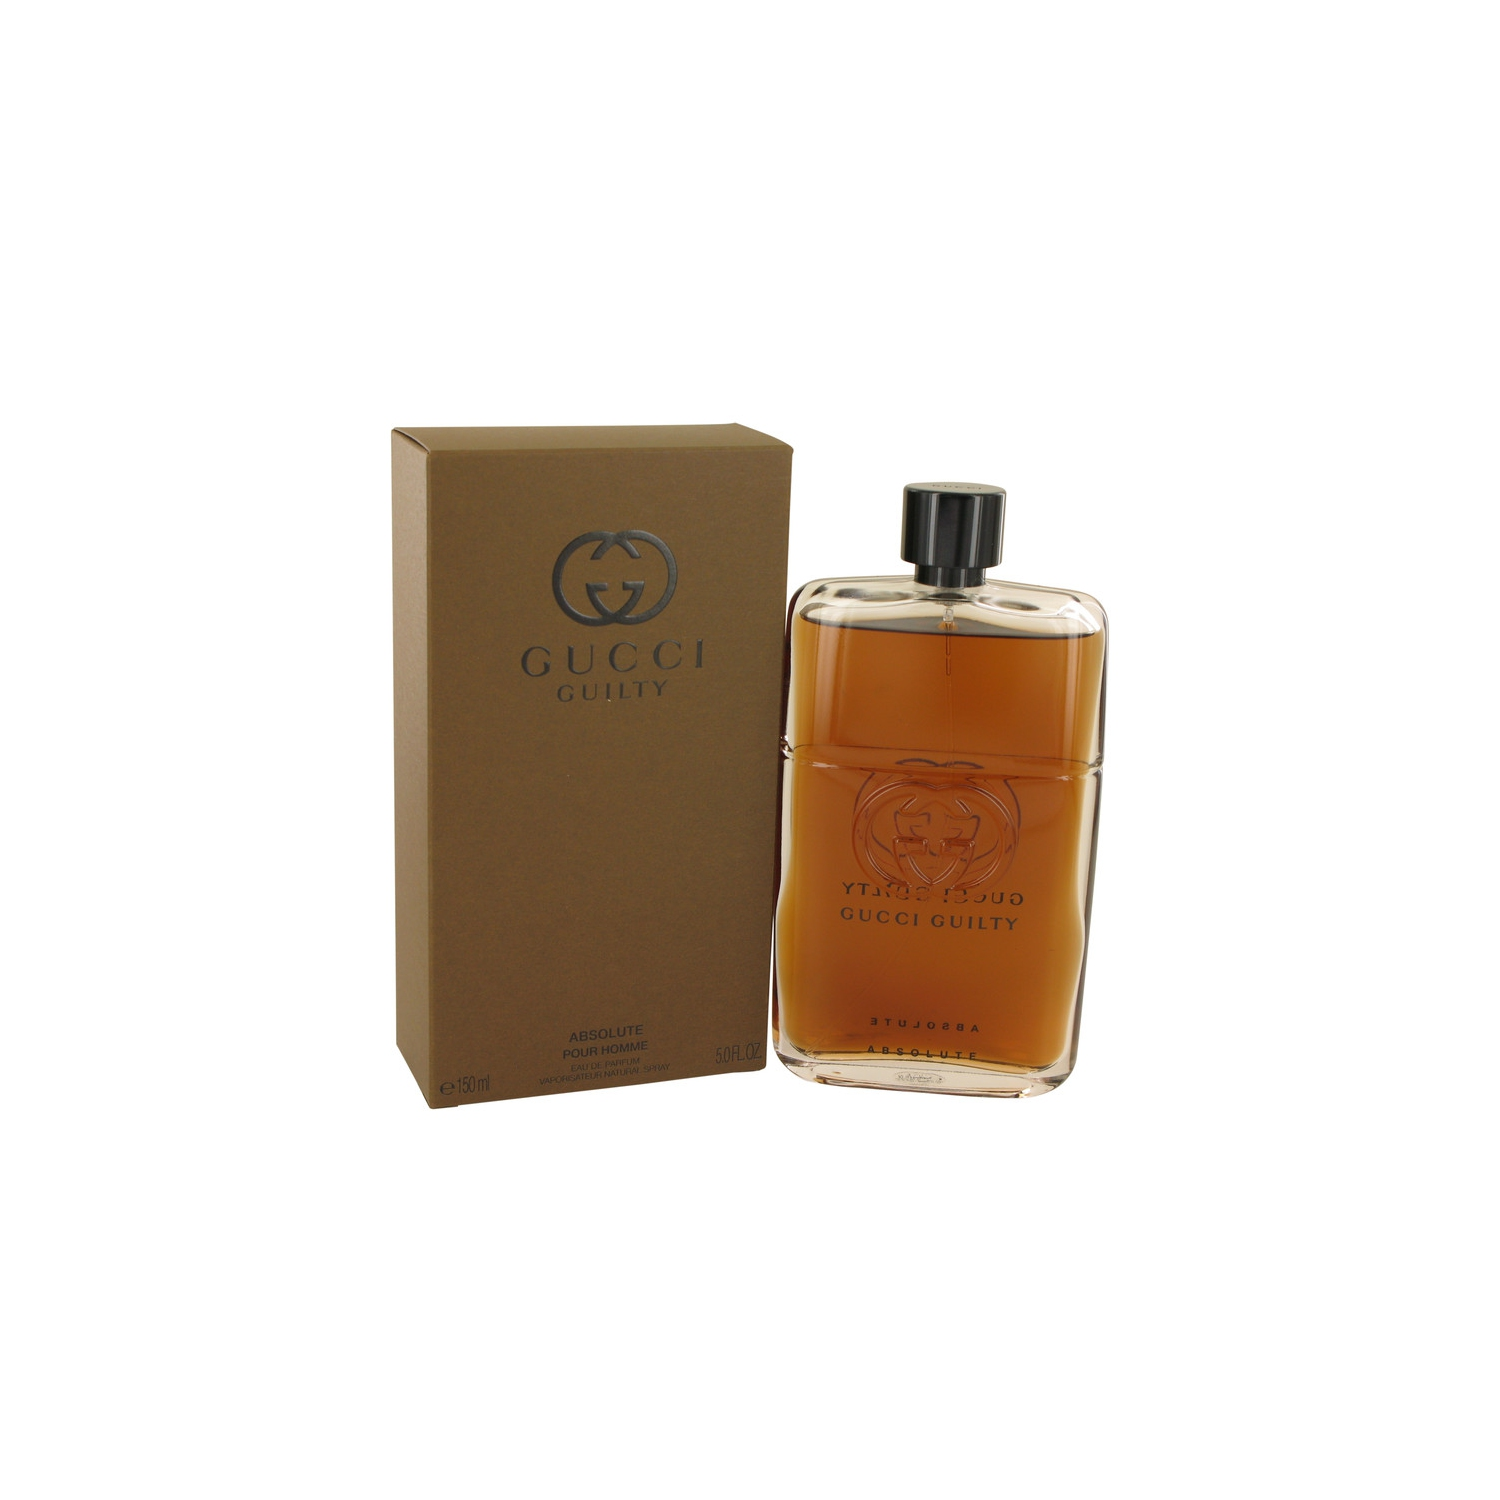 Gucci Guilty Absolute By Eau De Parfum Spray 5 Oz 150 Ml Gxxci Men Scents Fragrances Best Buy Canada